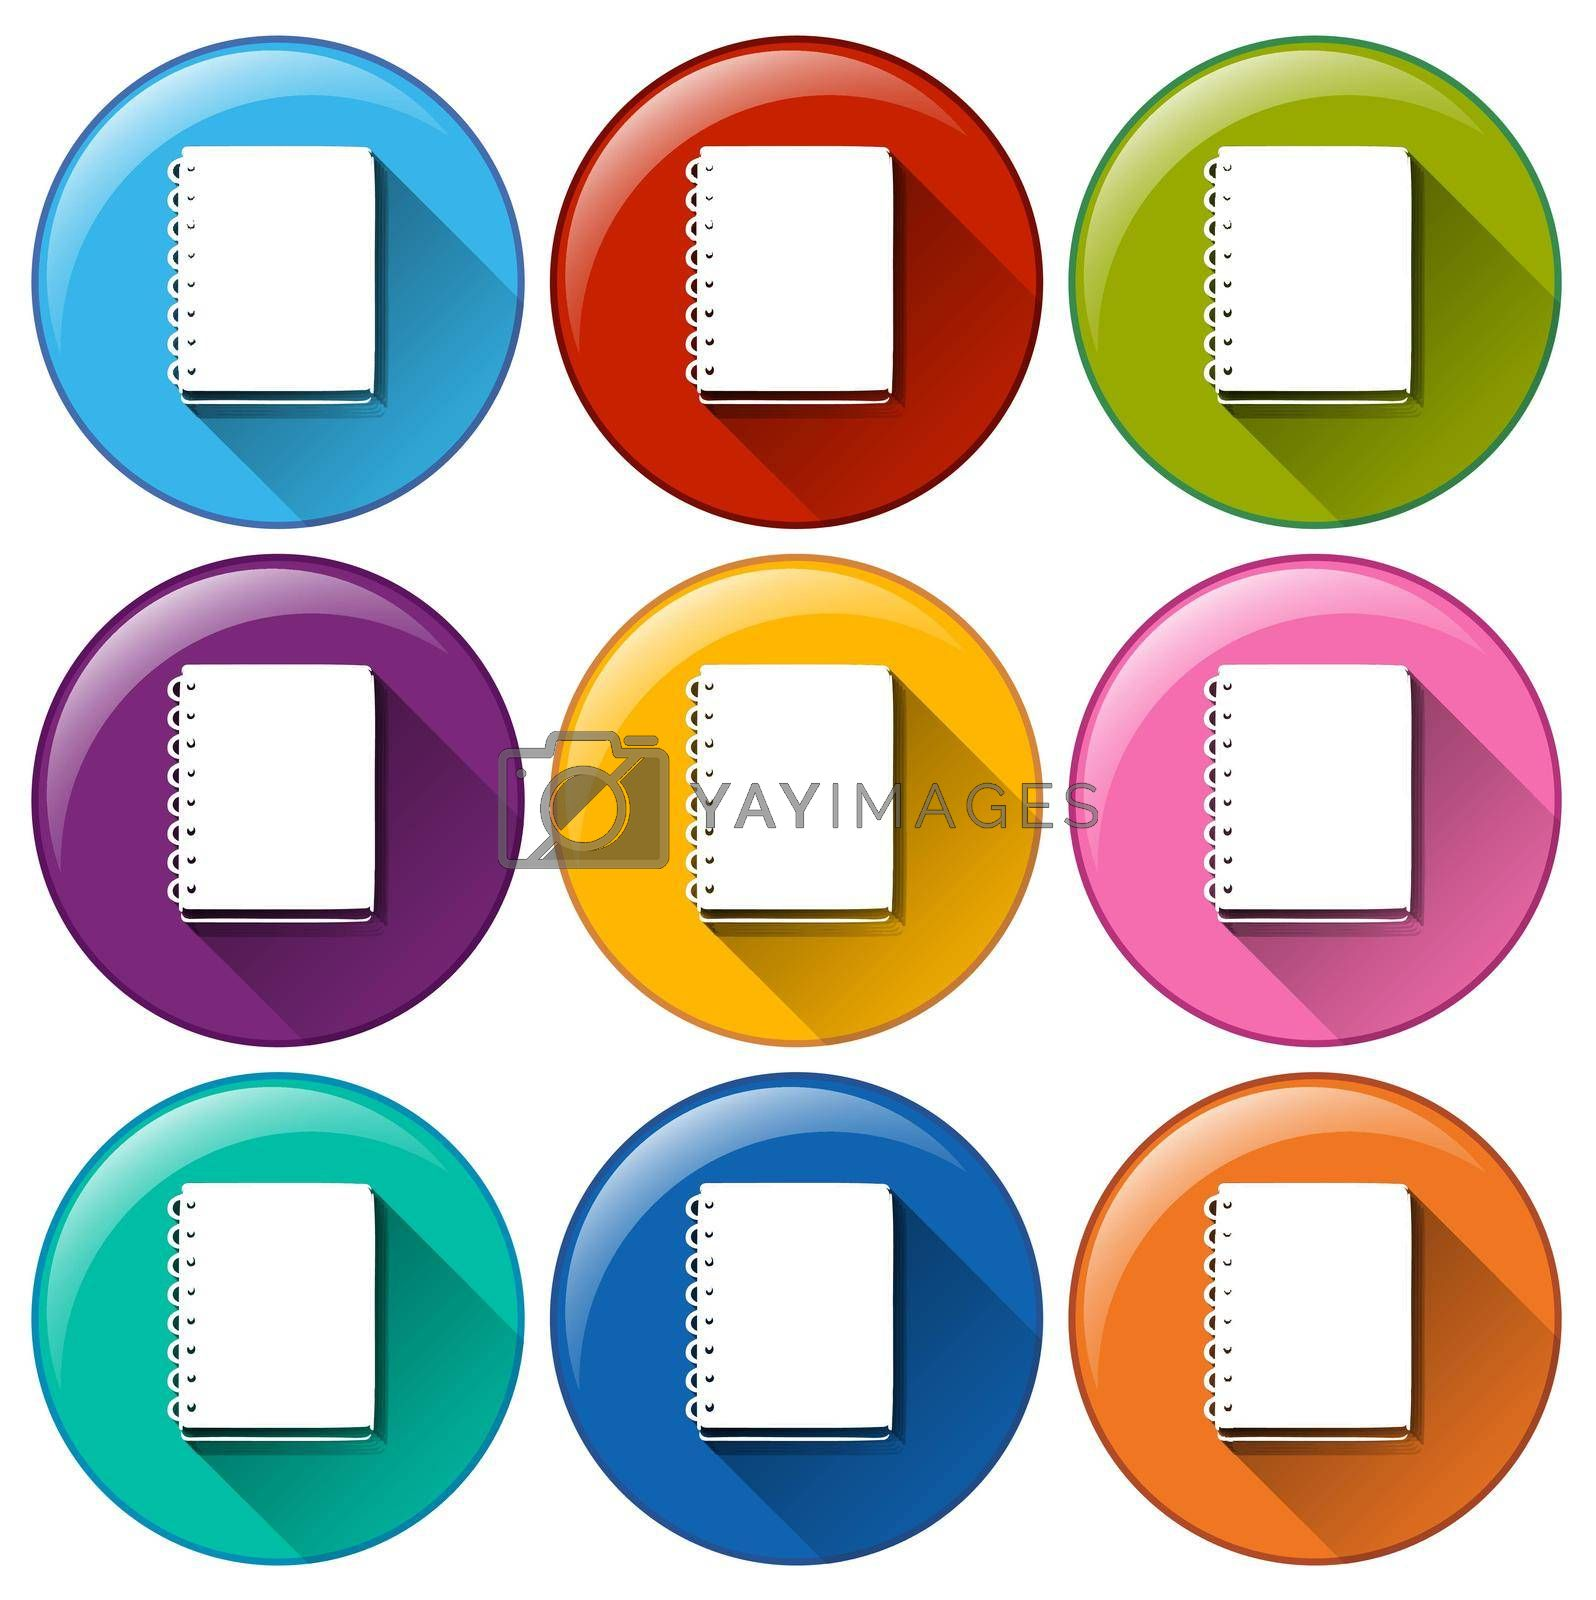 Royalty free image of Communication notebook icons by iimages